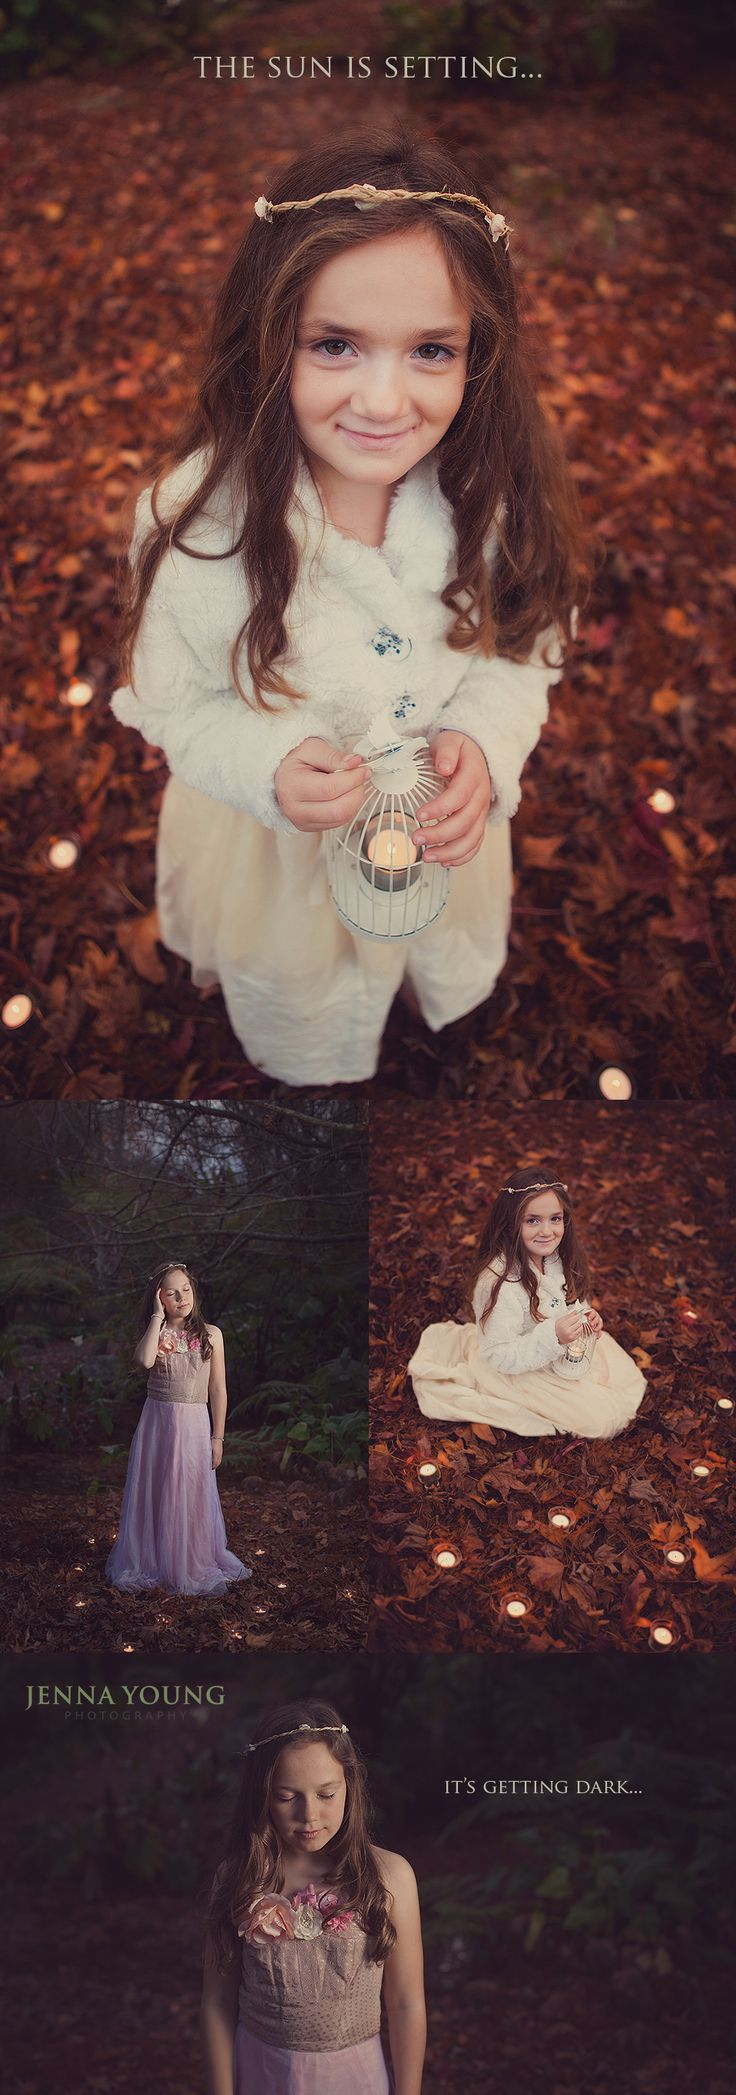 Images by Jenna Young Photography